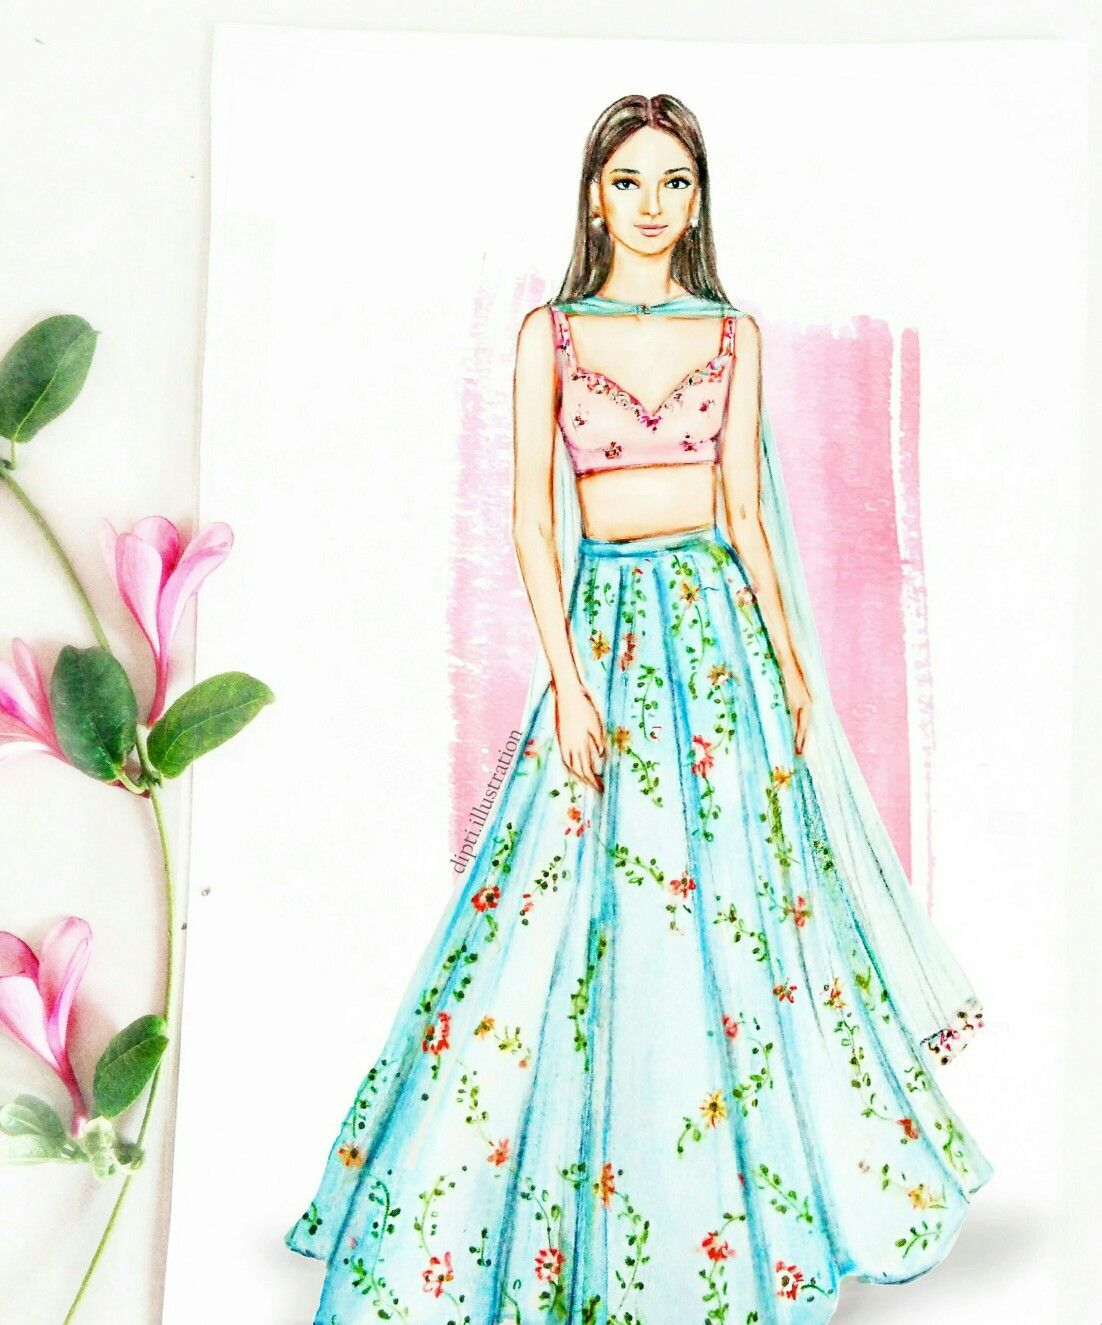 Kritikharbanda Bollywood Celebrity Weddingfashion Kalkixkritikharb Fashion Illustration Dresses Dress Design Drawing Fashion Illustration Sketches Dresses